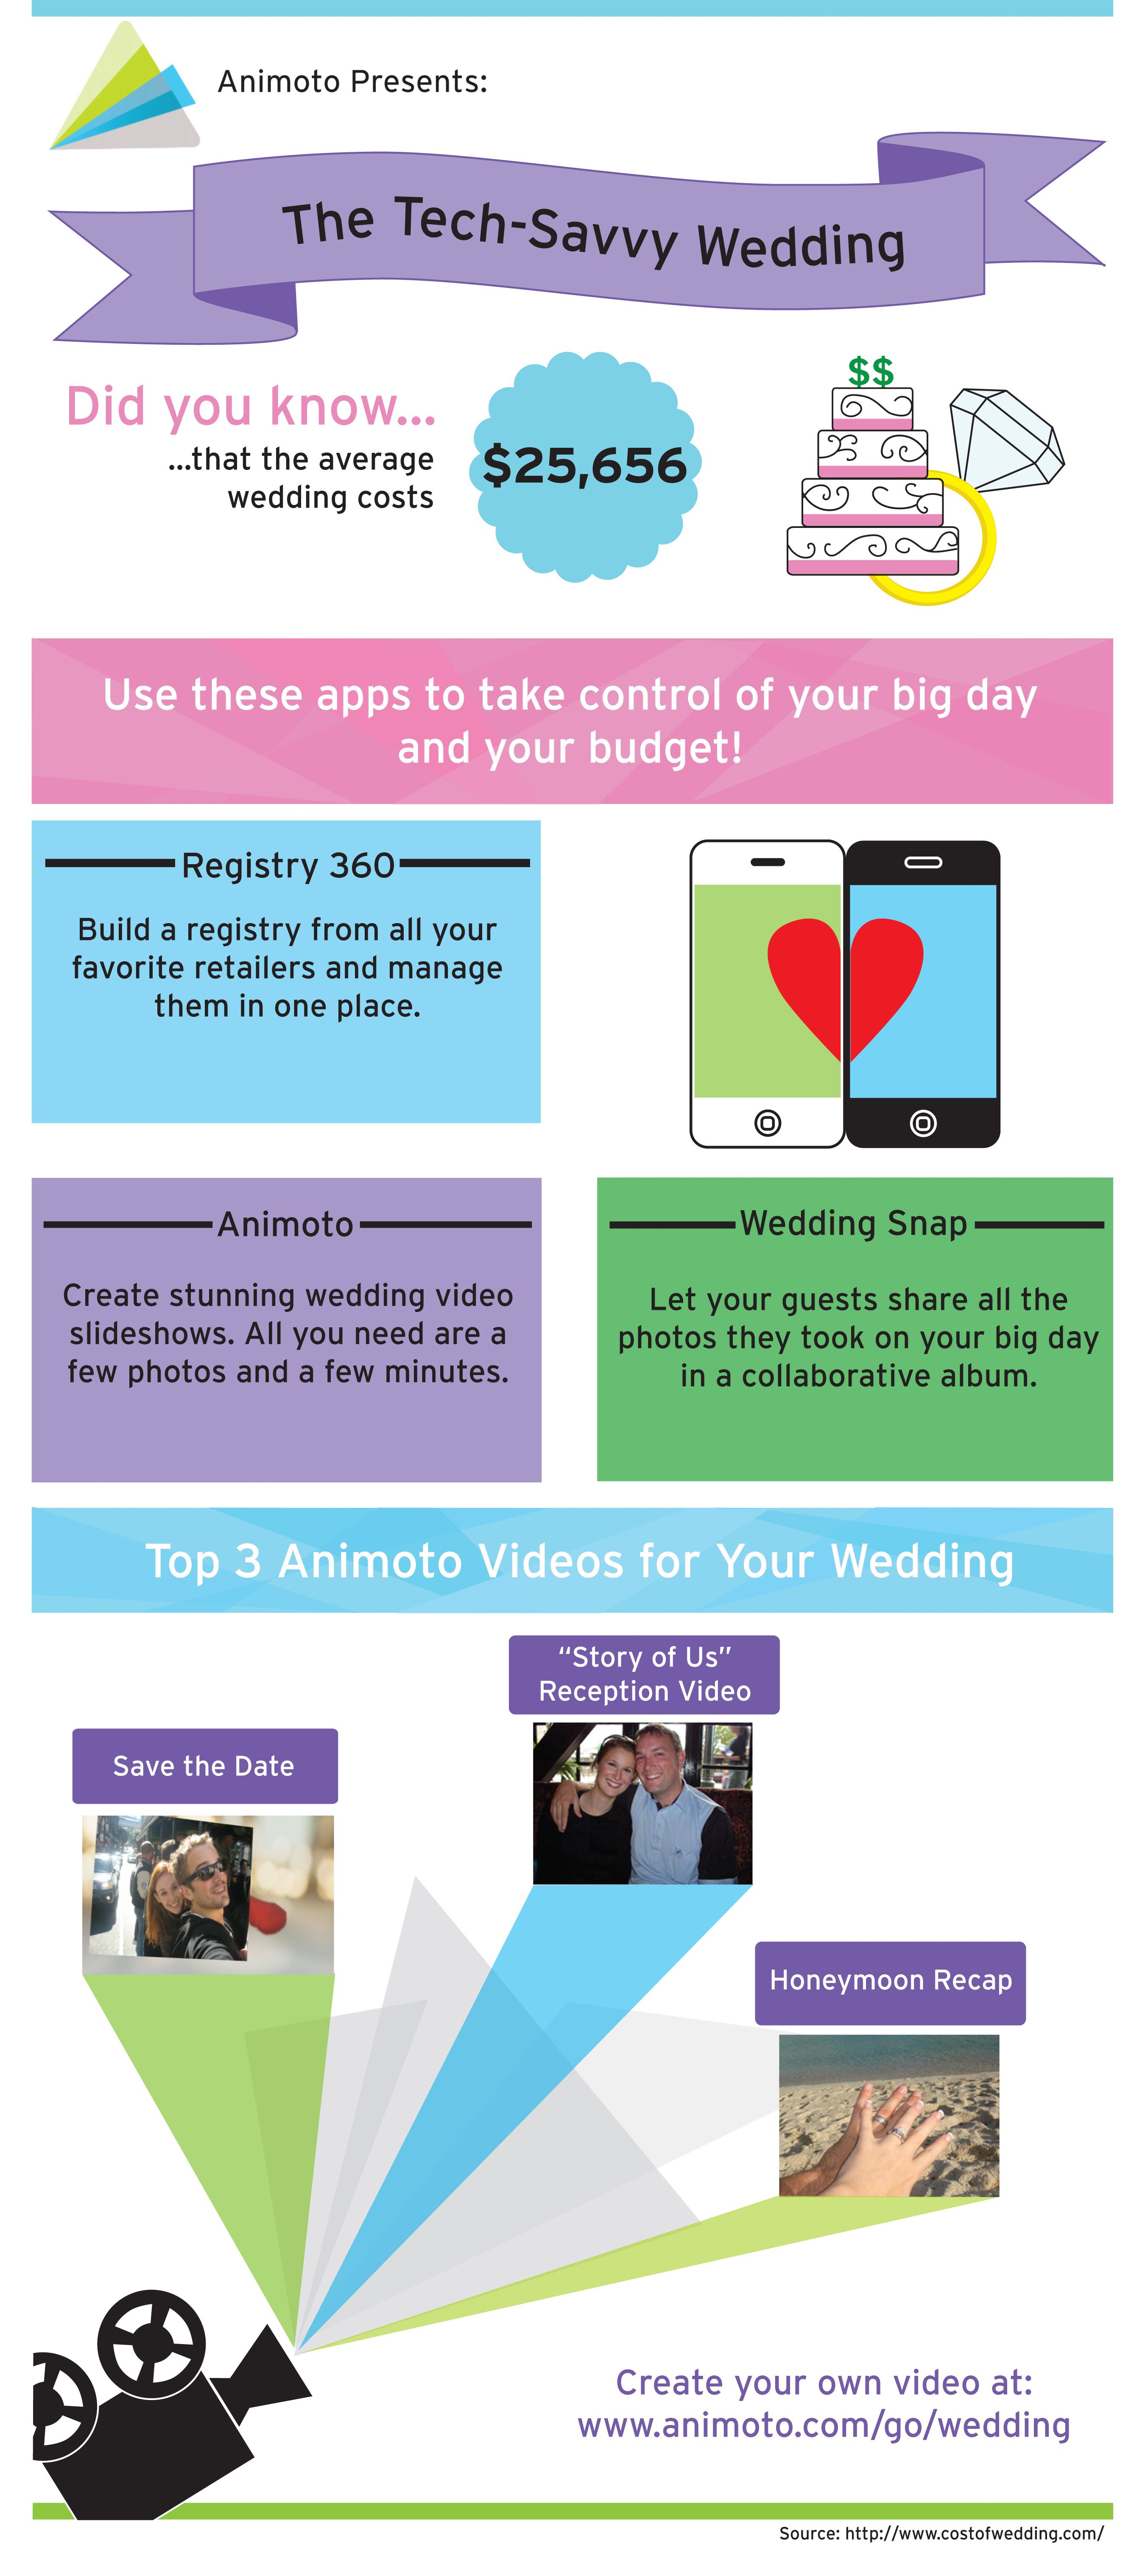 Average Wedding Costs 2015.The Tech Savvy Wedding Use These Apps To Take Control Of